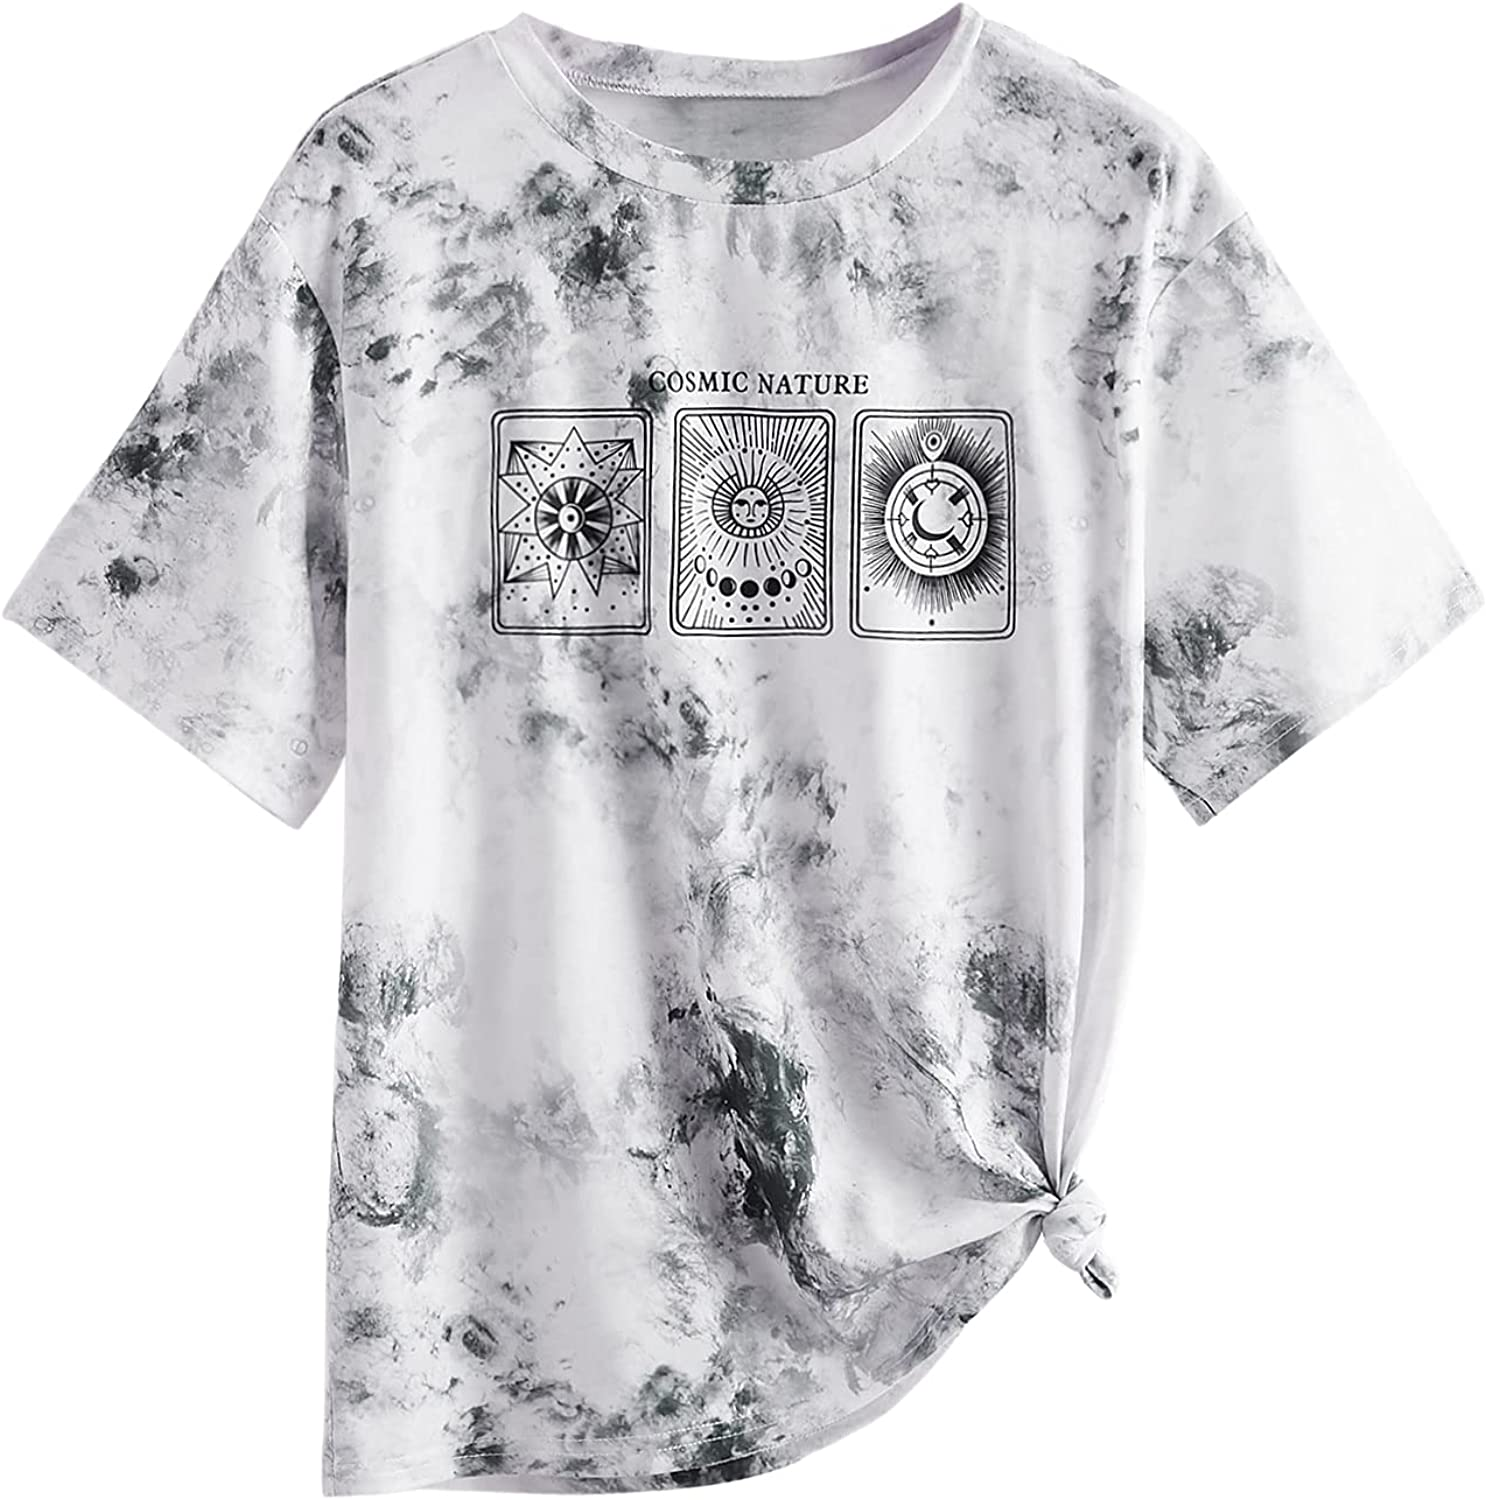 SOLY HUX Women's Tie Dye Short Sleeve Tee Casual Letter Print T Shirt Top